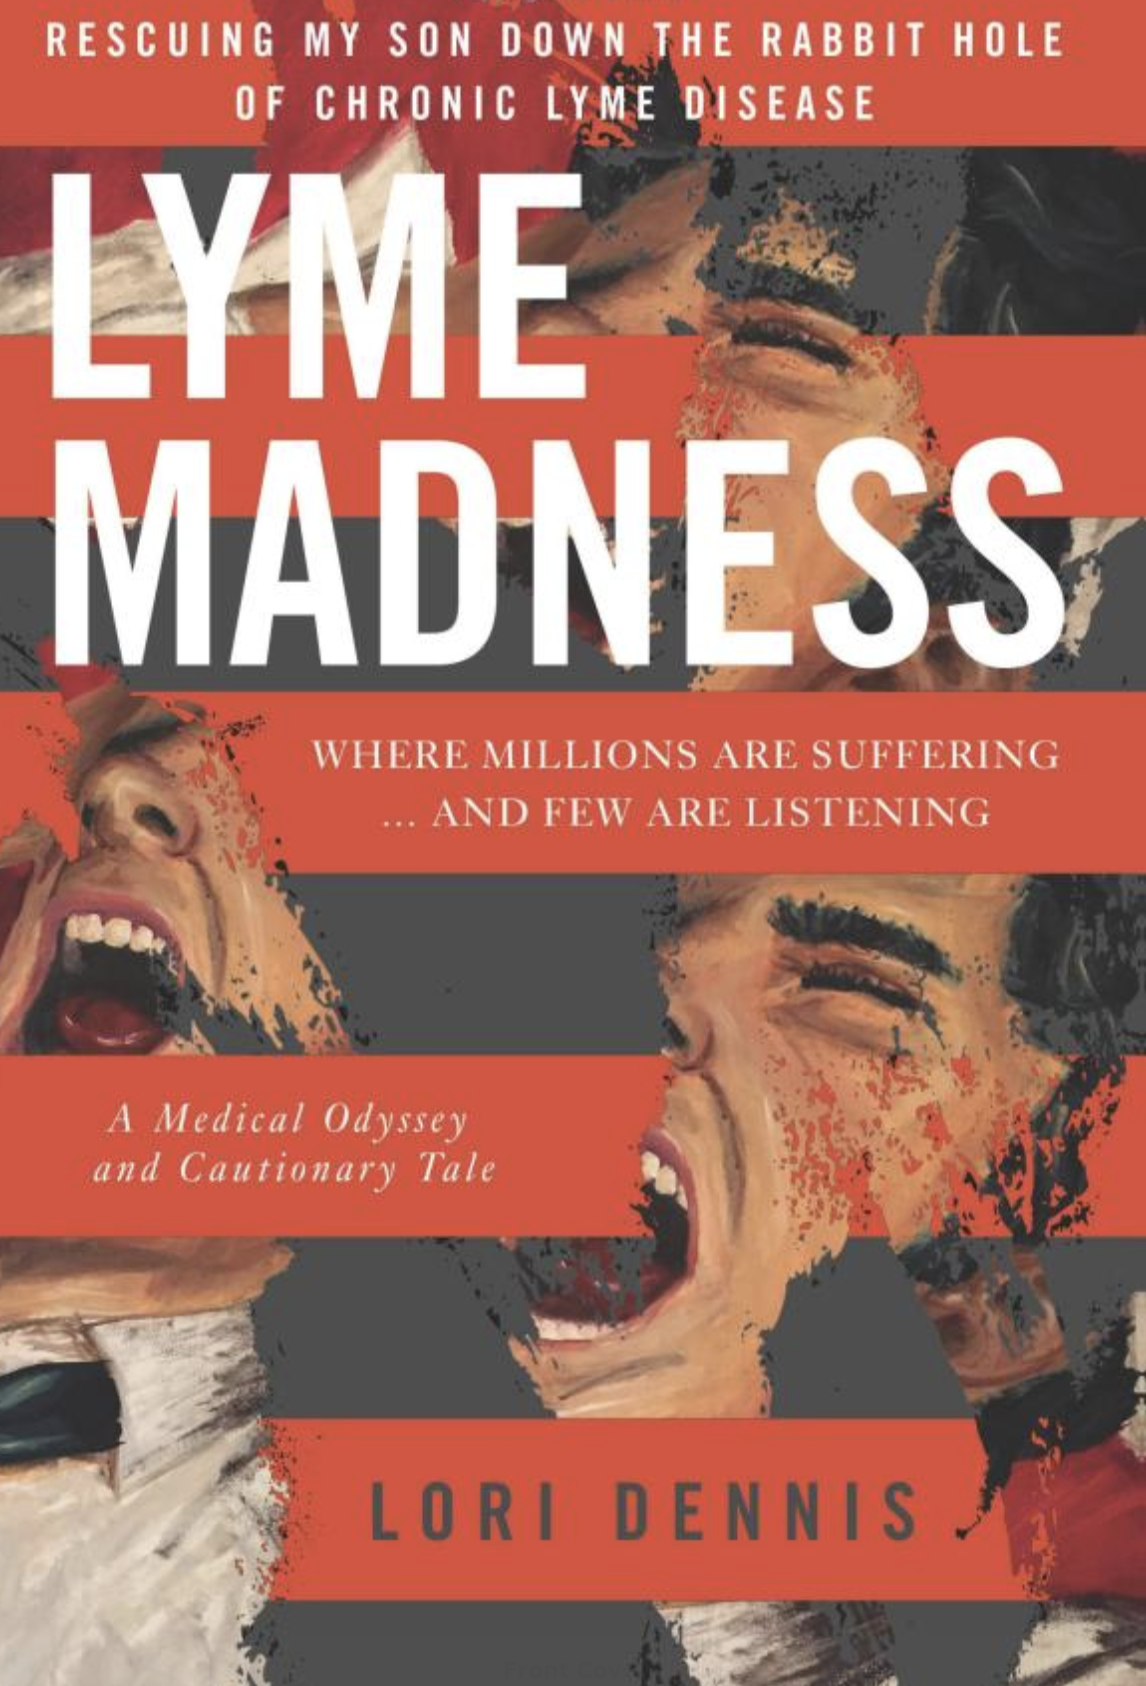 Lyme Madness: Rescuing My Son Down the Rabbit Hole of Chronic Lyme Disease